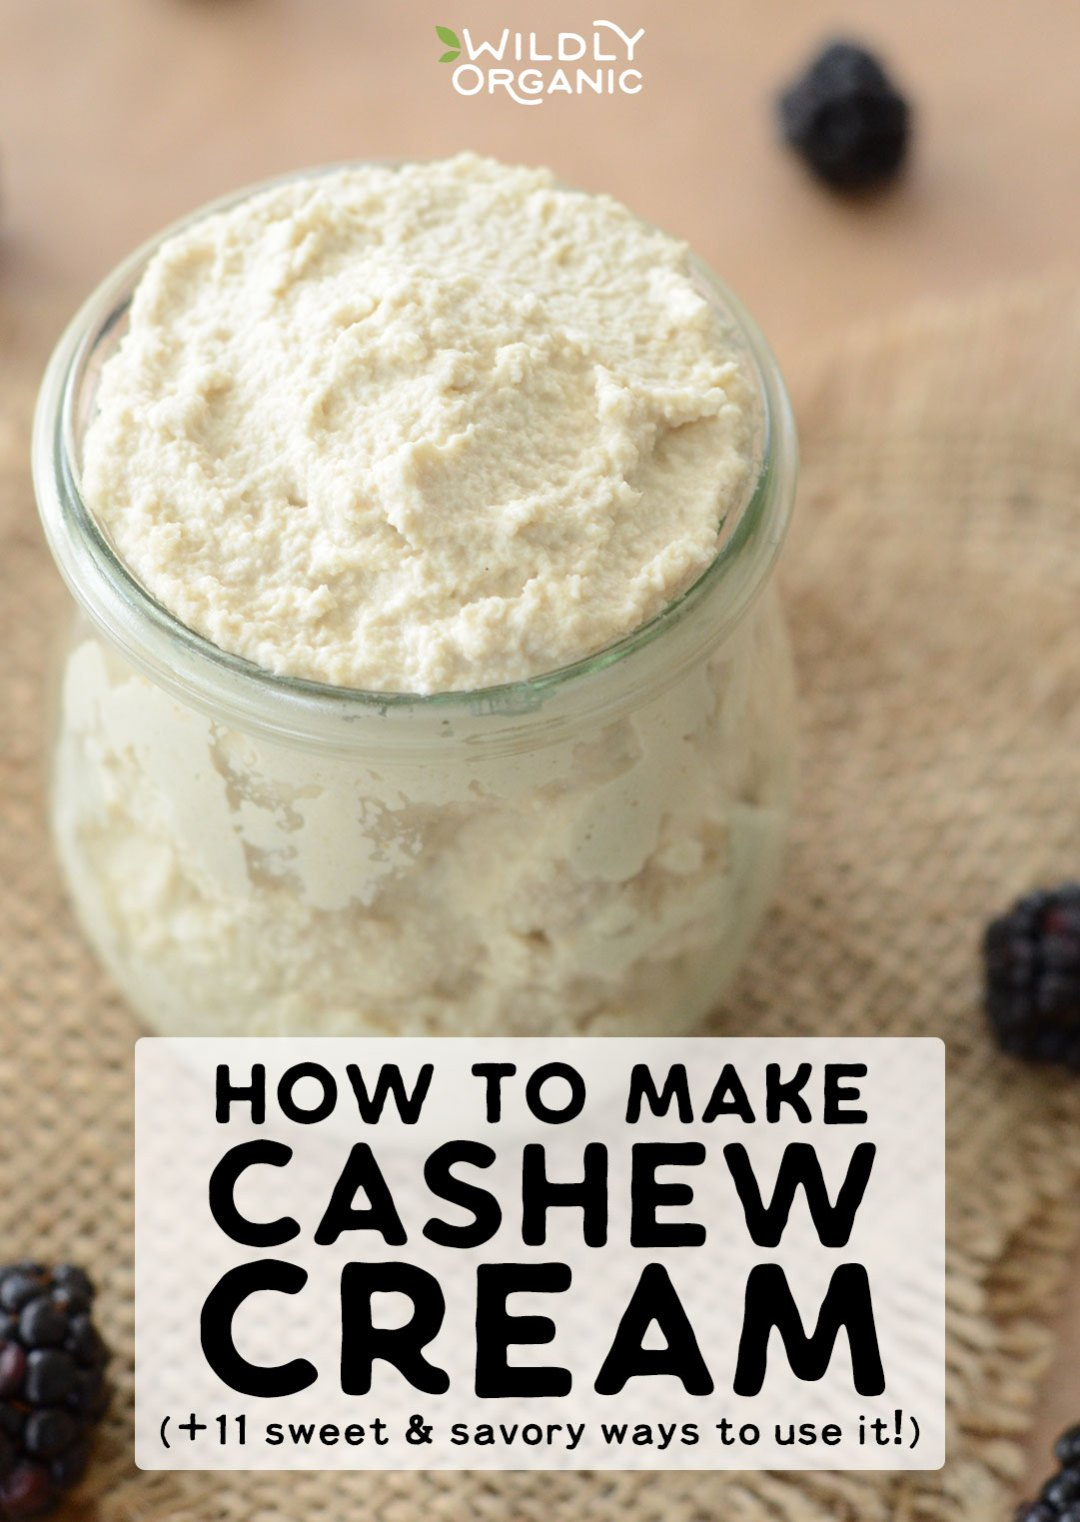 Want something creamy but need to avoid dairy? This cashew cream is the perfect addition to your dairy-free real food repertoire. Learn how to make cashew cream, then get 11 sweet and savory ideas for using it in your healthy, dairy-free or vegan dishes!